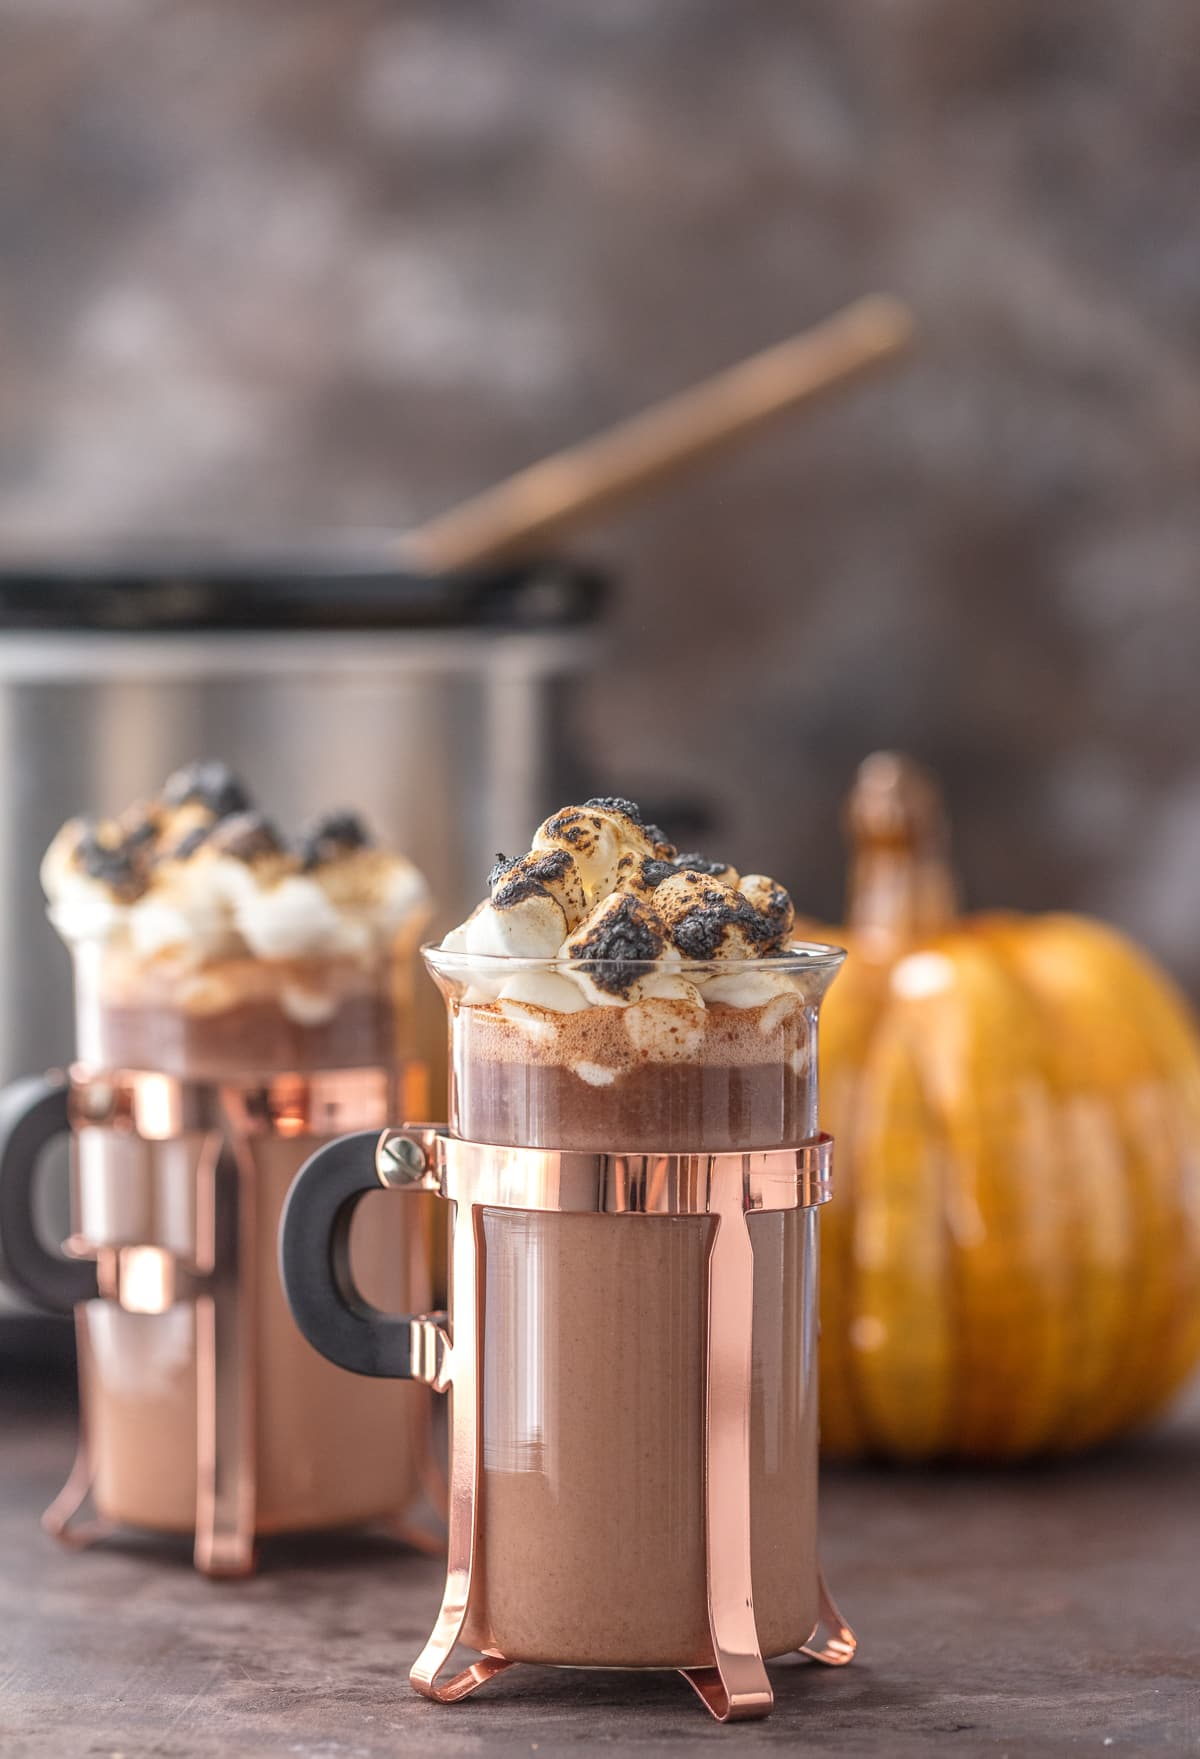 Making hot chocolate for a crowd - Spiked Slow Cooker Pumpkin Pie Hot Chocolate Is The Ultimate Thanksgiving Cocktail Made In A